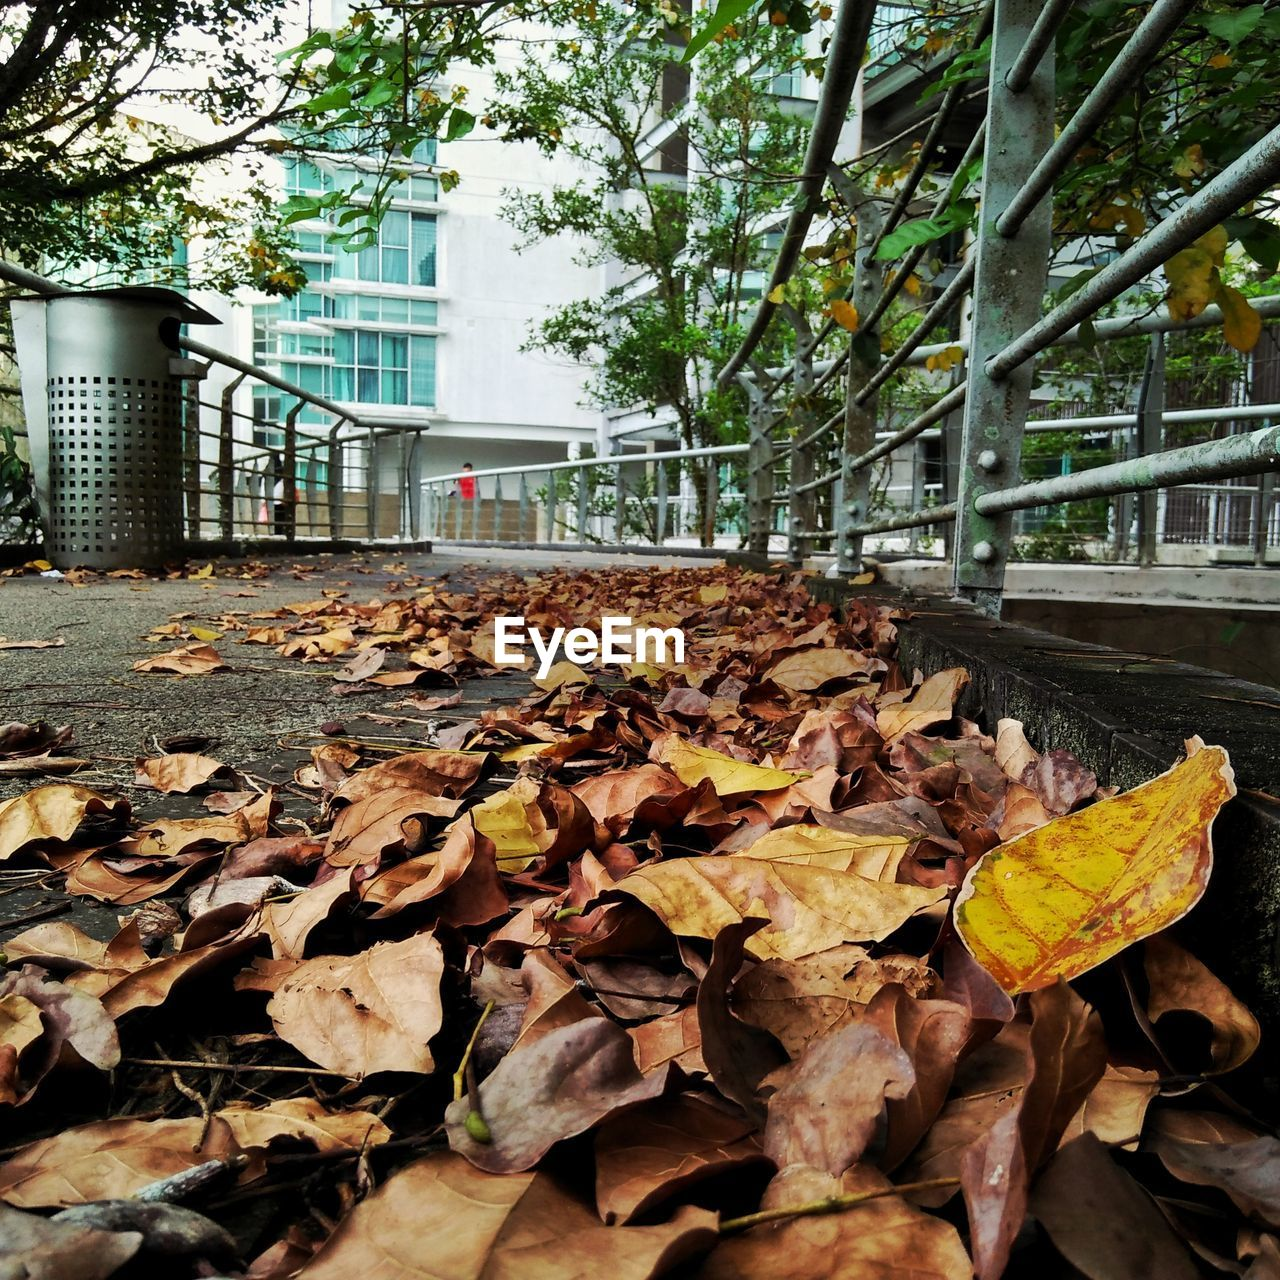 plant part, leaf, change, leaves, autumn, dry, day, nature, no people, tree, plant, falling, land, outdoors, close-up, beauty in nature, architecture, field, built structure, park, natural condition, maple leaf, fall, surface level, autumn collection